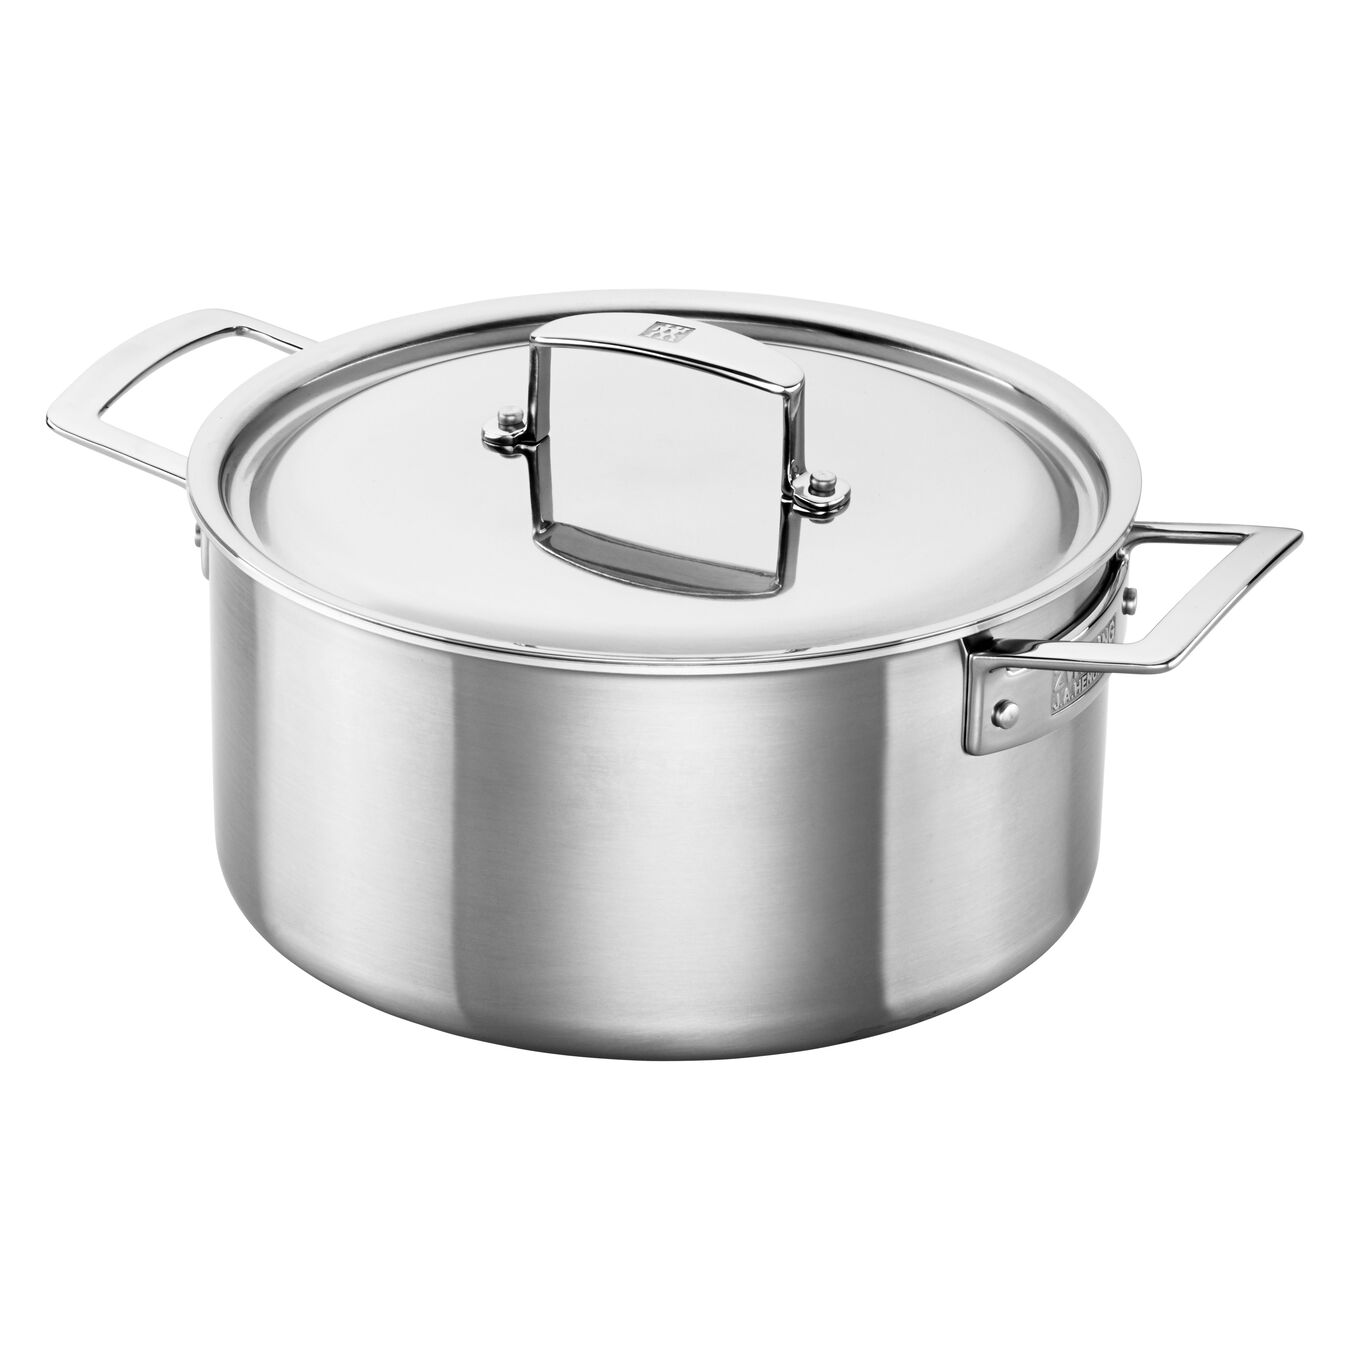 7 Piece 18/10 Stainless Steel Cookware set,,large 2